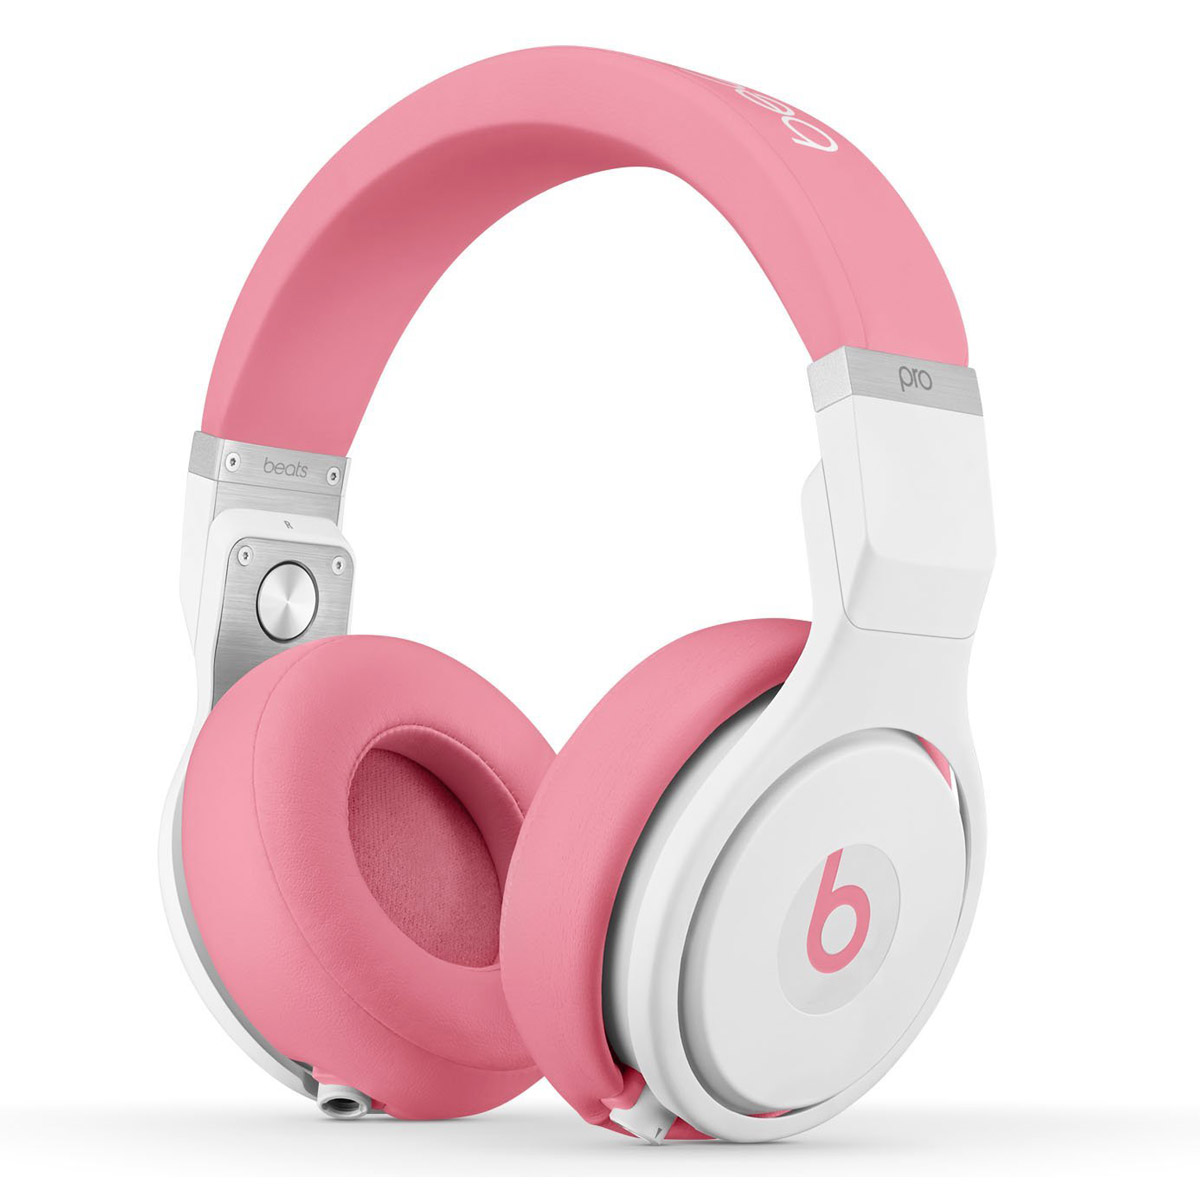 Beats by Dr Dre | Pro Over-Ear Headphone - Nicki Minaj Pink | FrontRowElectronics.com